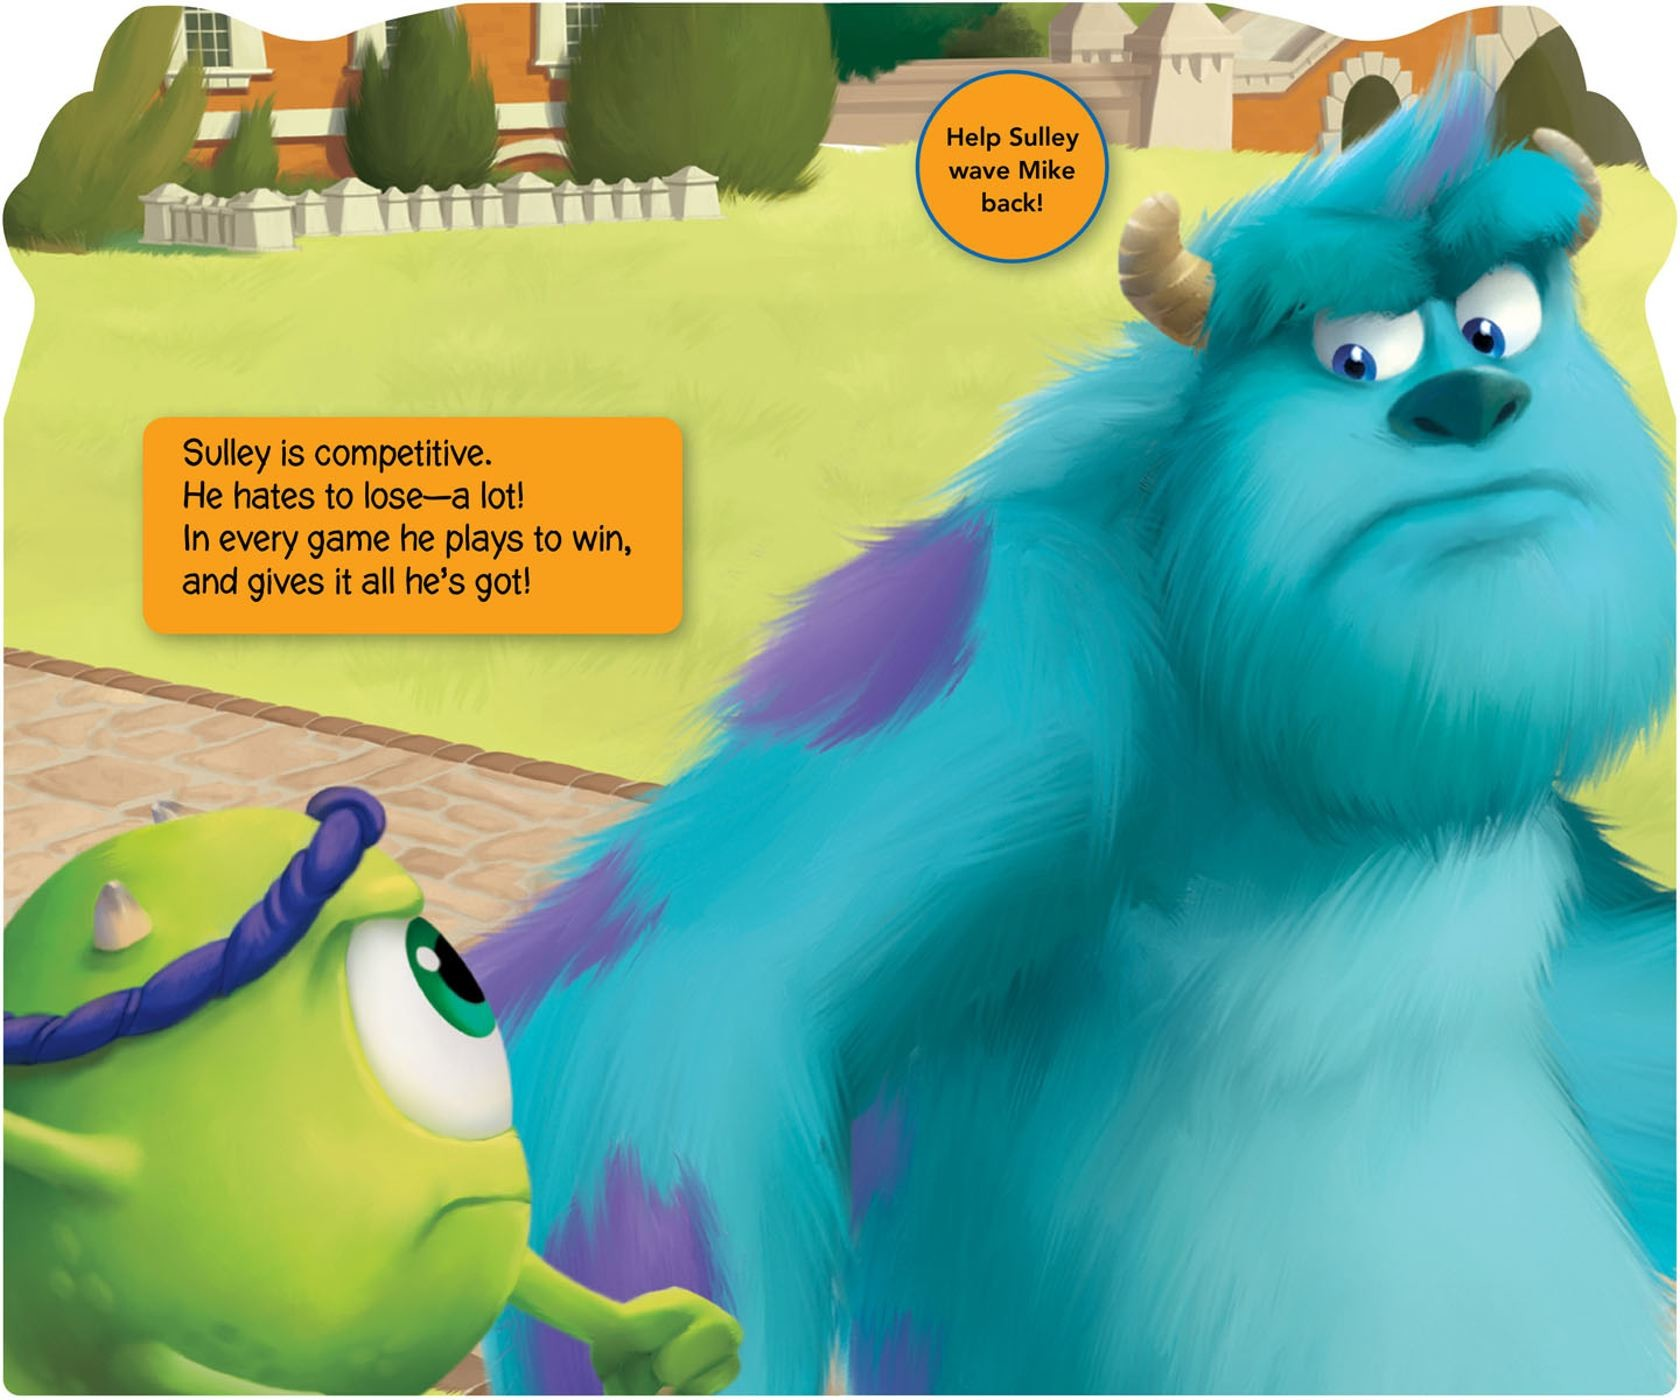 Disney-pixar-monsters-university-go-sulley!-9780794427399.in01